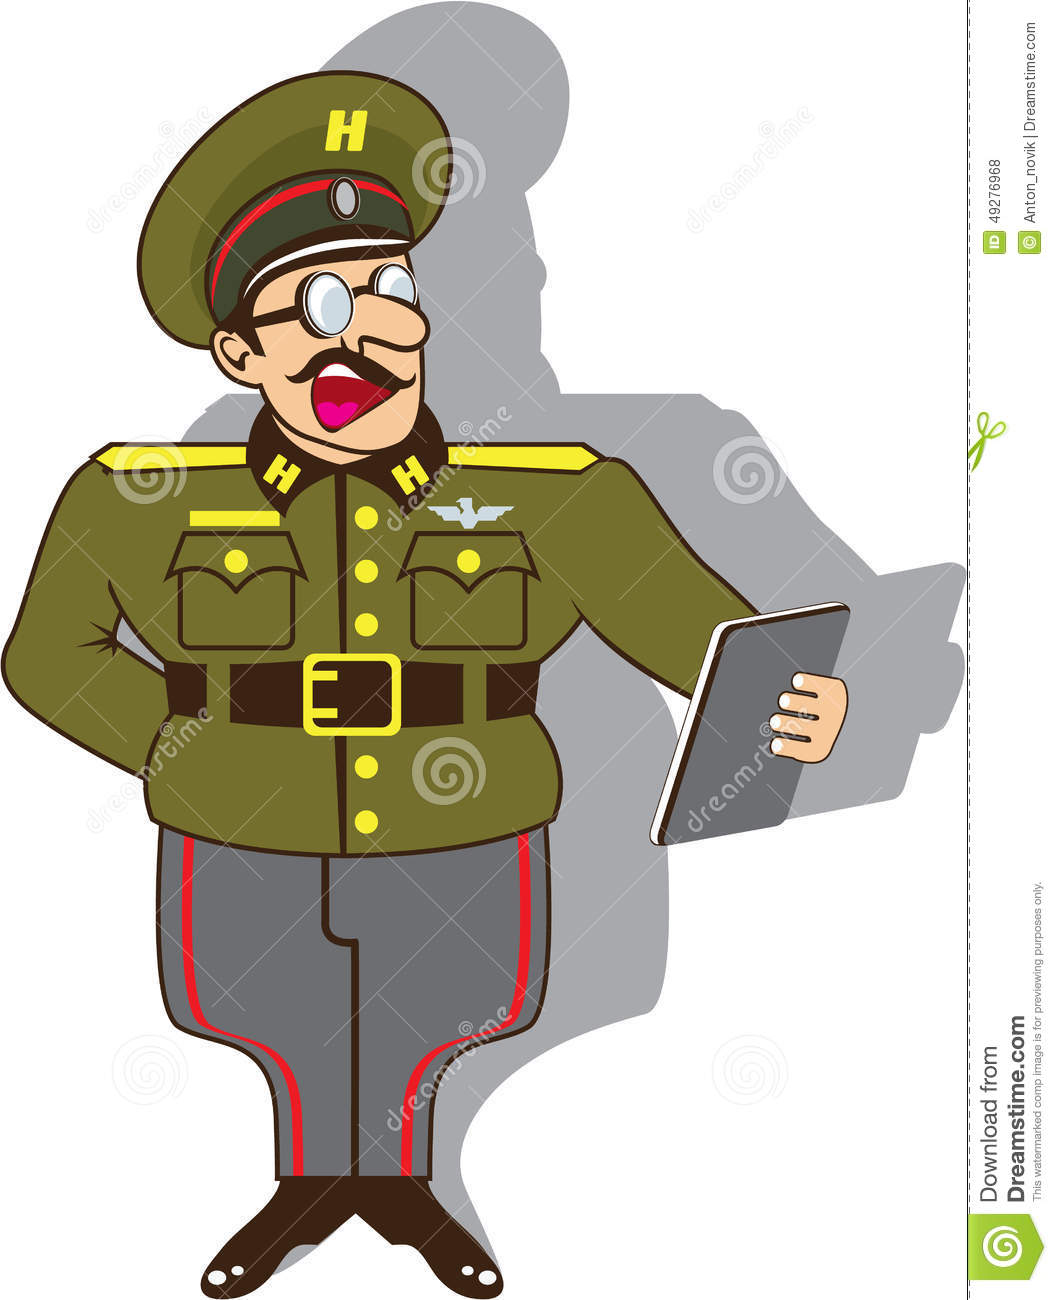 Soldiers clipart army commander Cartoon Military Animated Collection